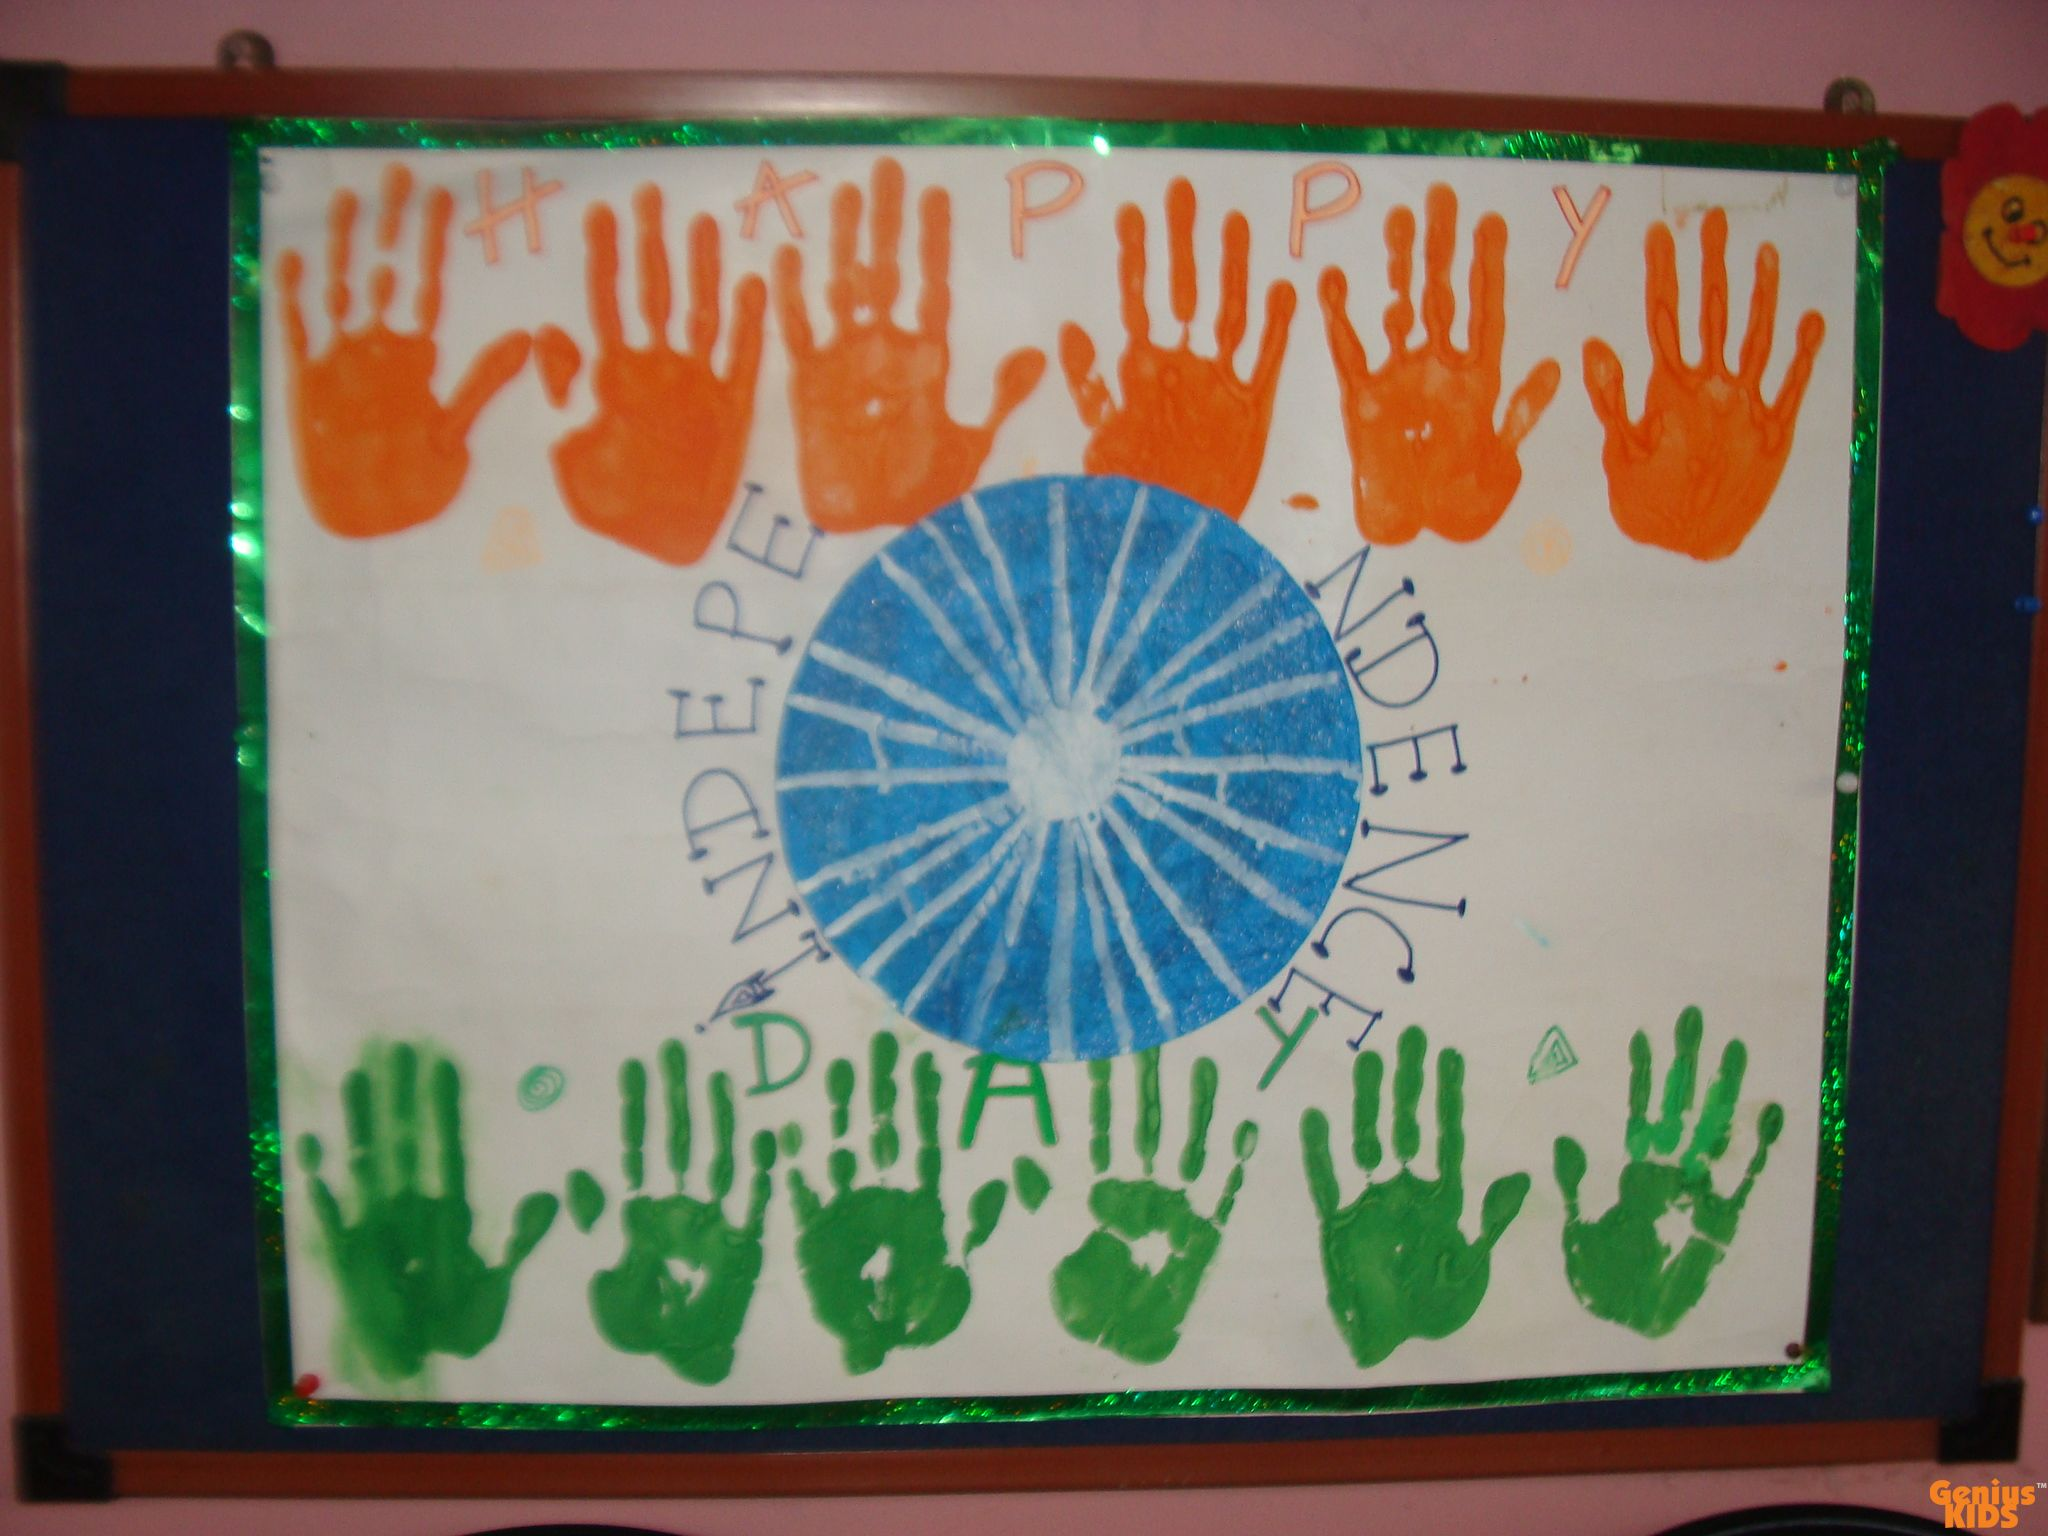 indepencdence-day-celebrations-playschool-Kolkata-05